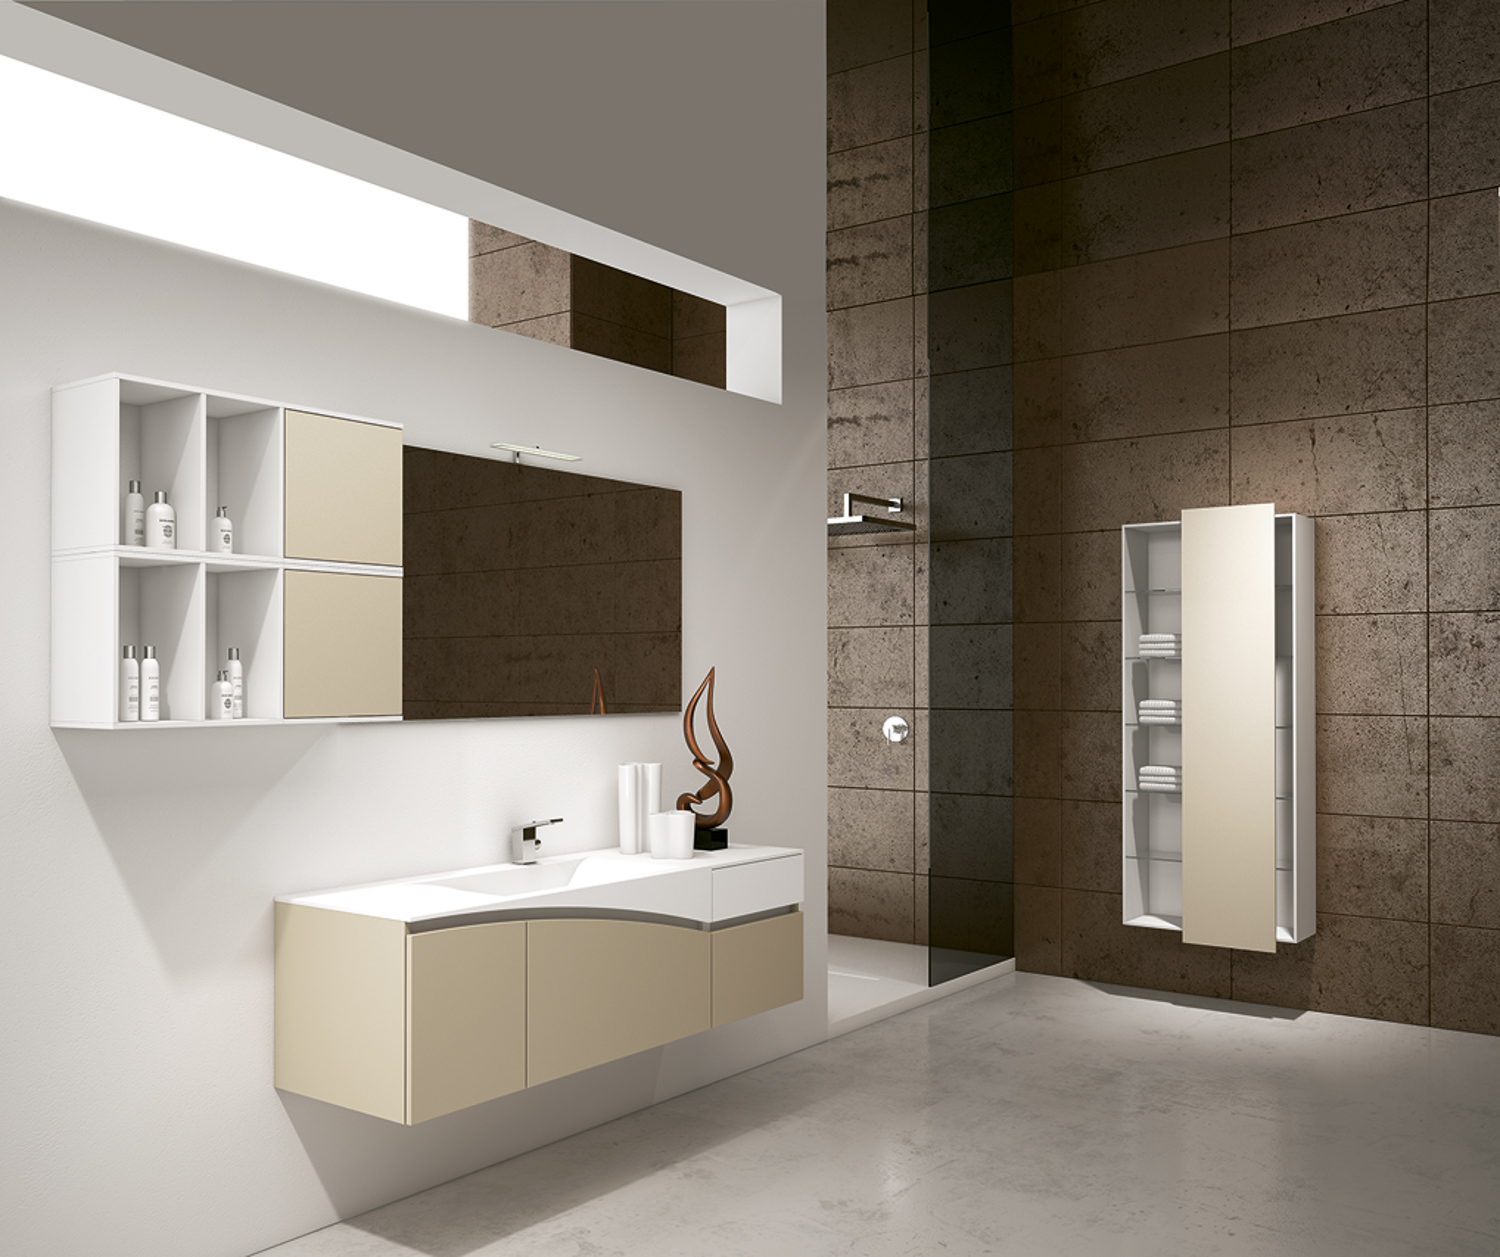 Fly bmt arredo bagno - Mobile bagno fly ...